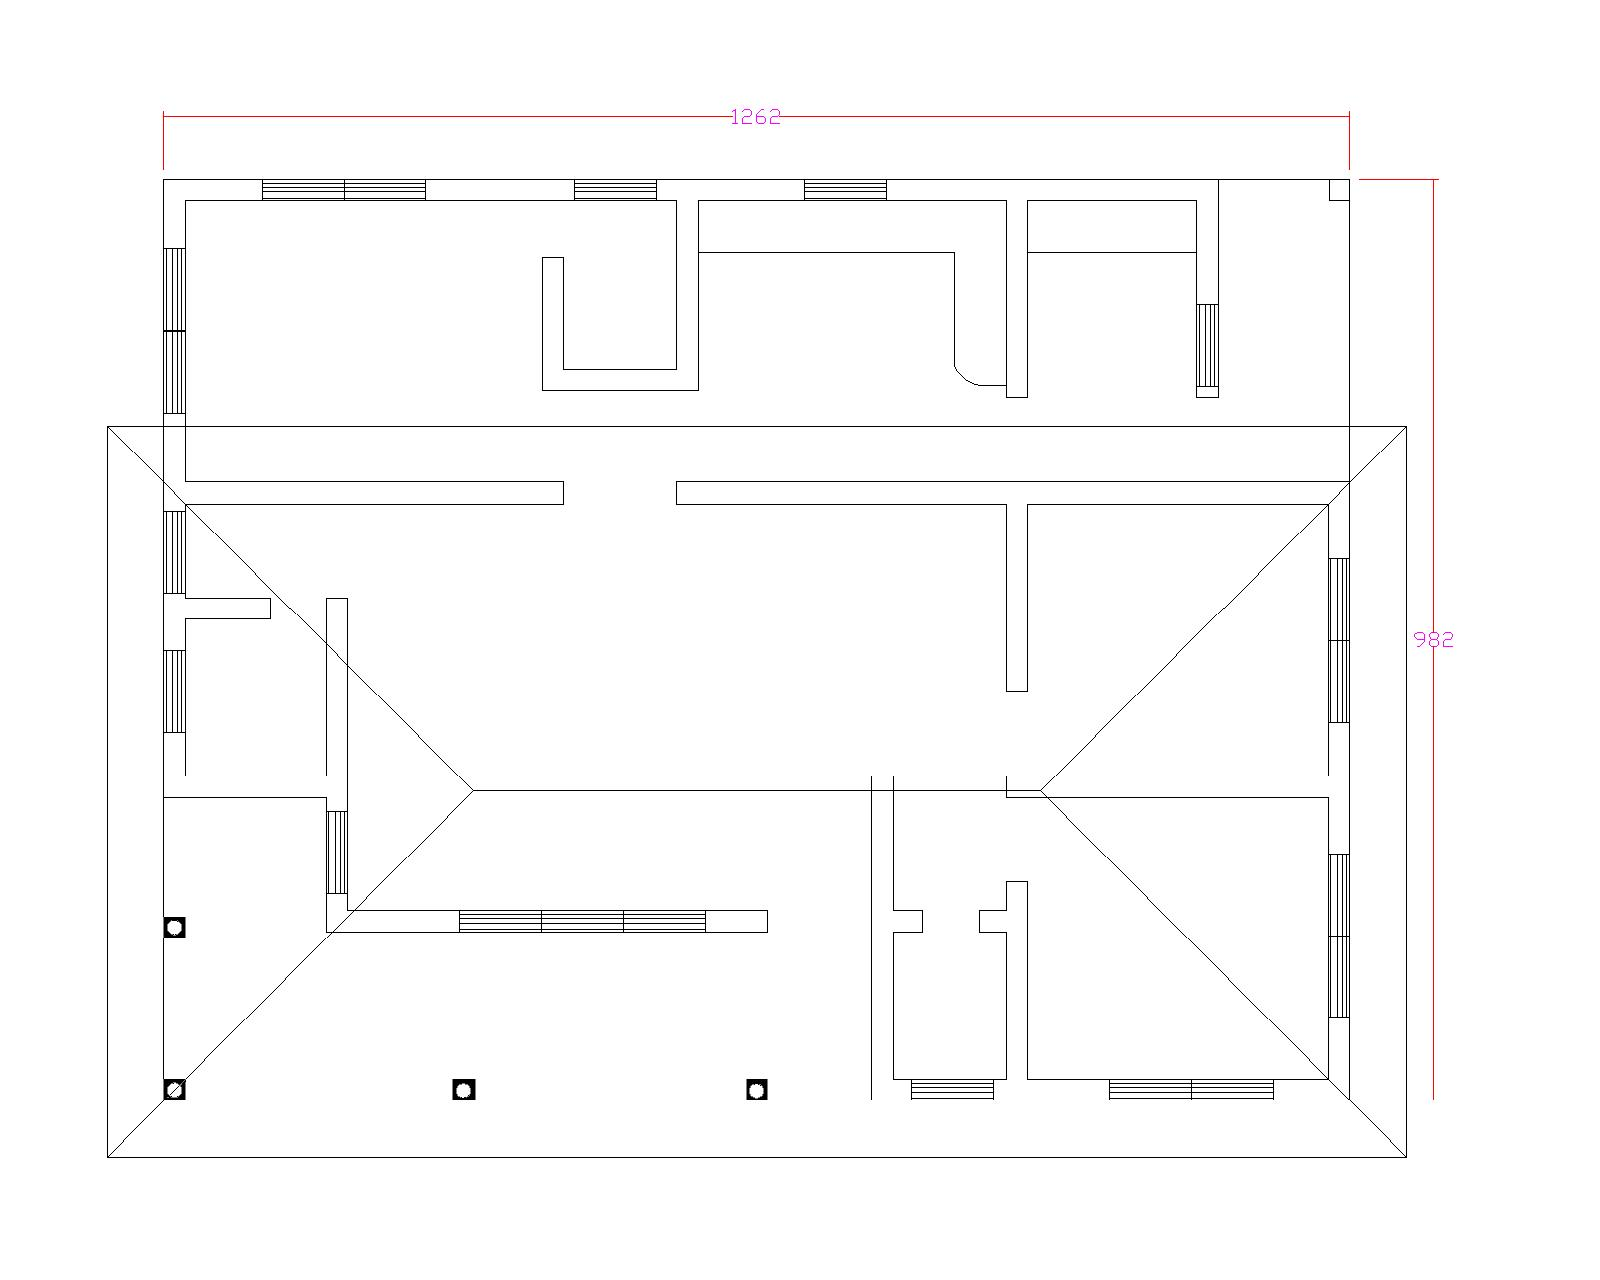 Ente veedu ente veedu traditional house plan 12222 for Veedu elevation